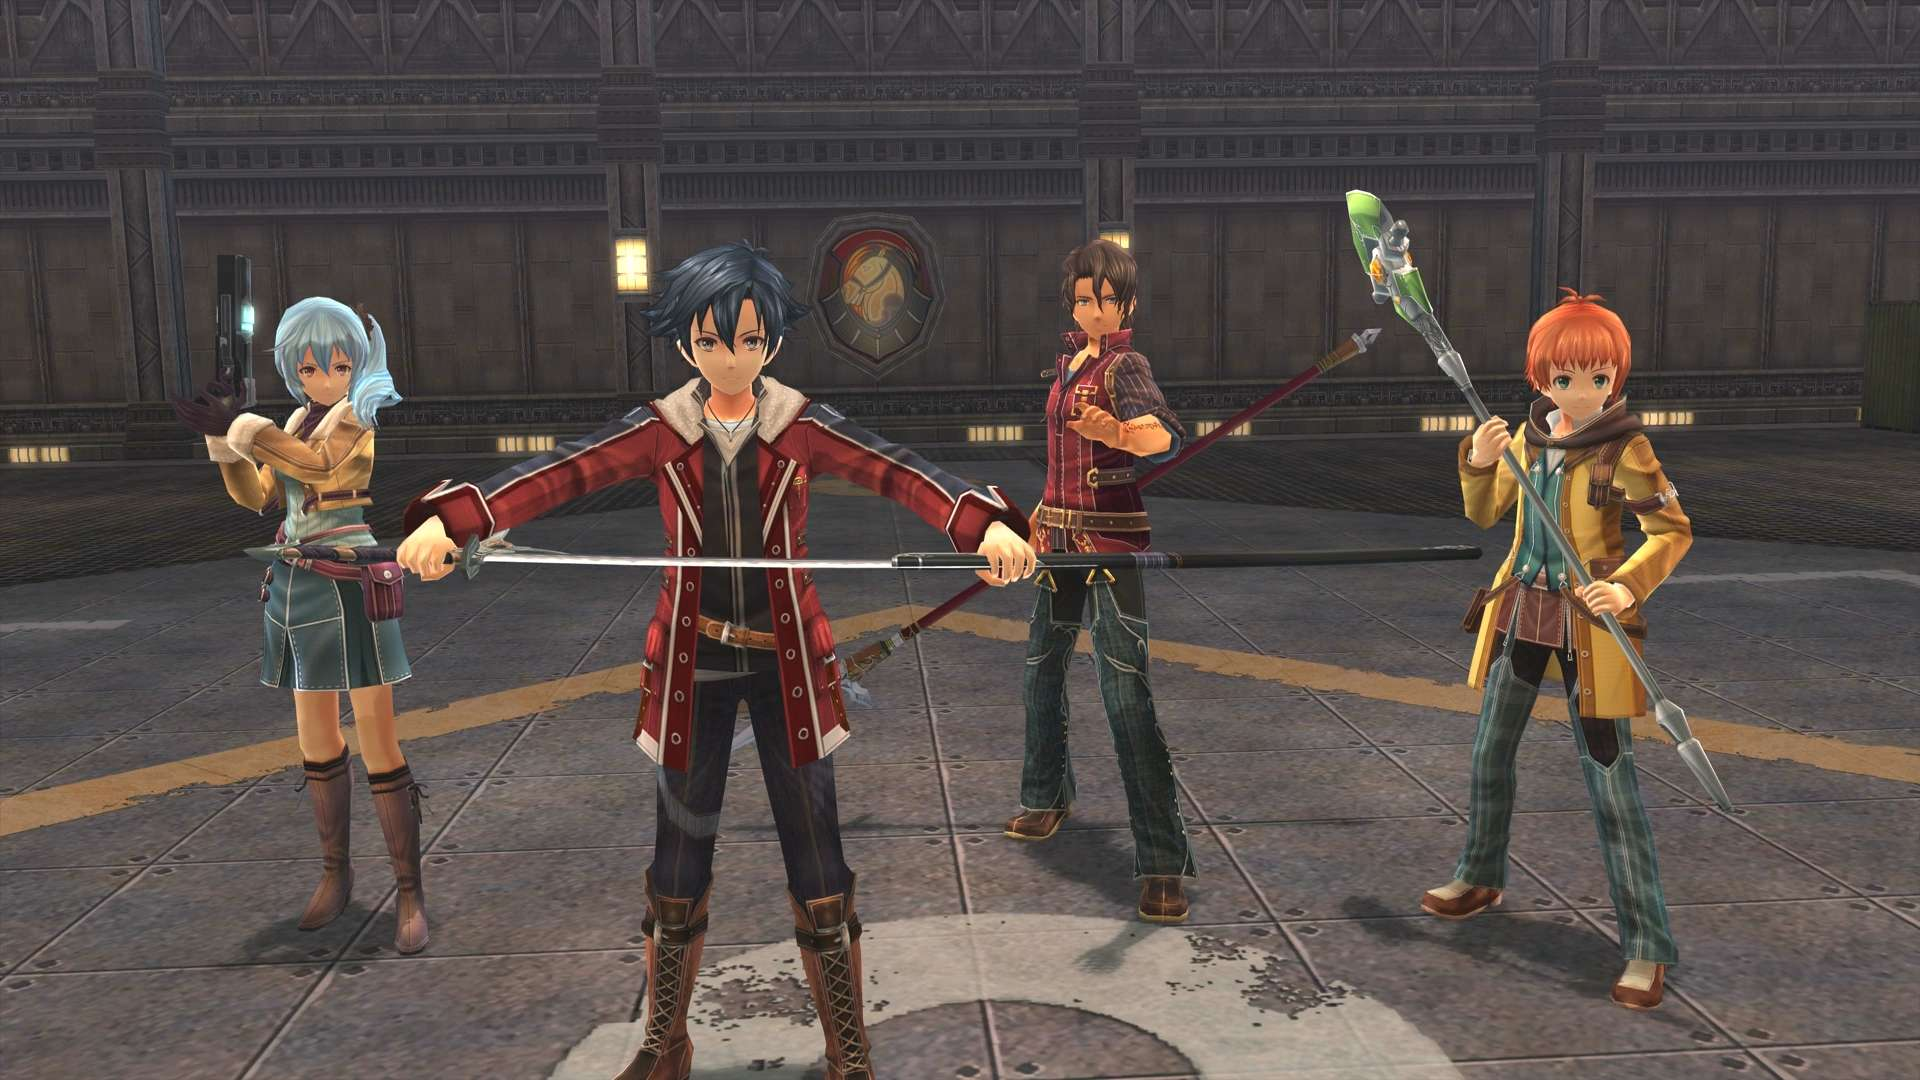 Znamy datę premiery The Legend of Heroes: Trails of Cold Steel 2 #1